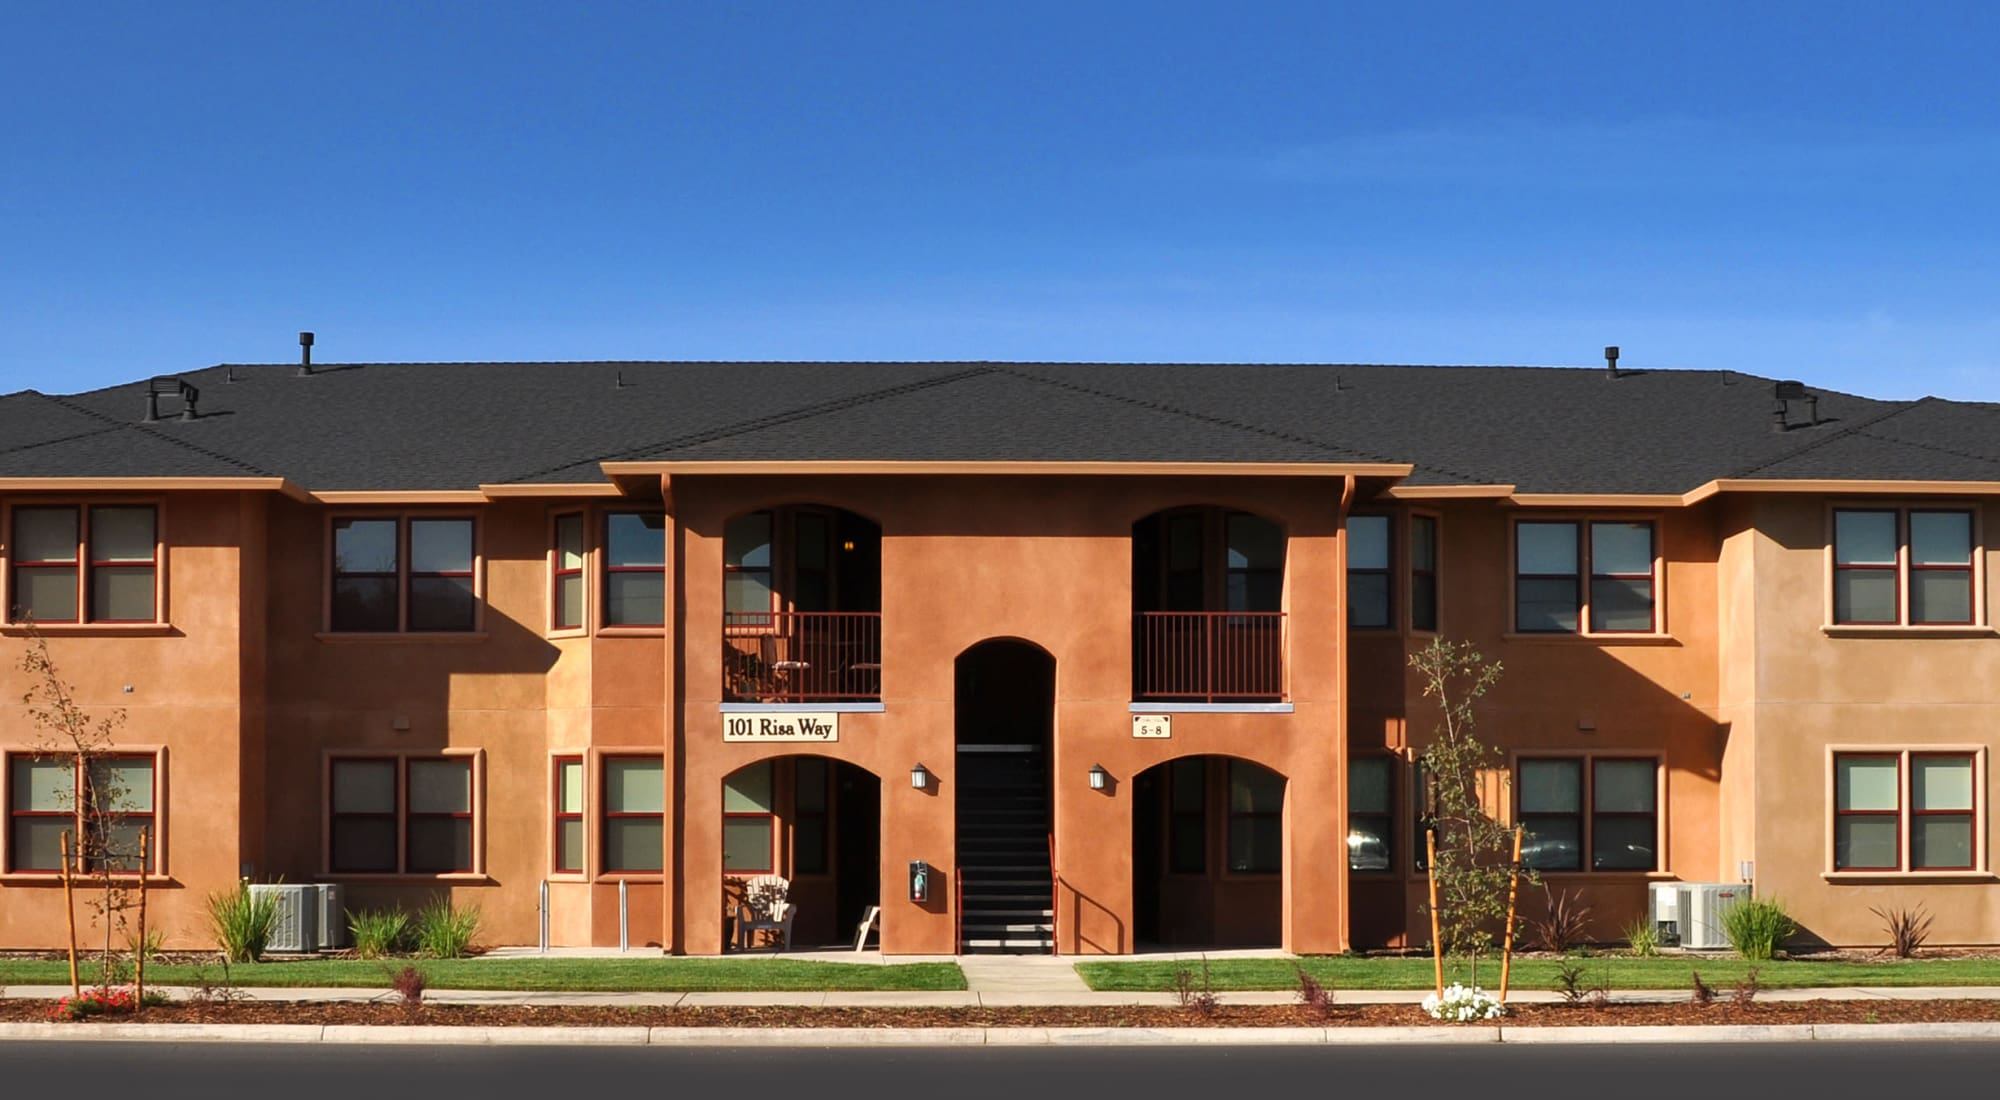 Apply now at Villa Risa Apartments in Chico, California